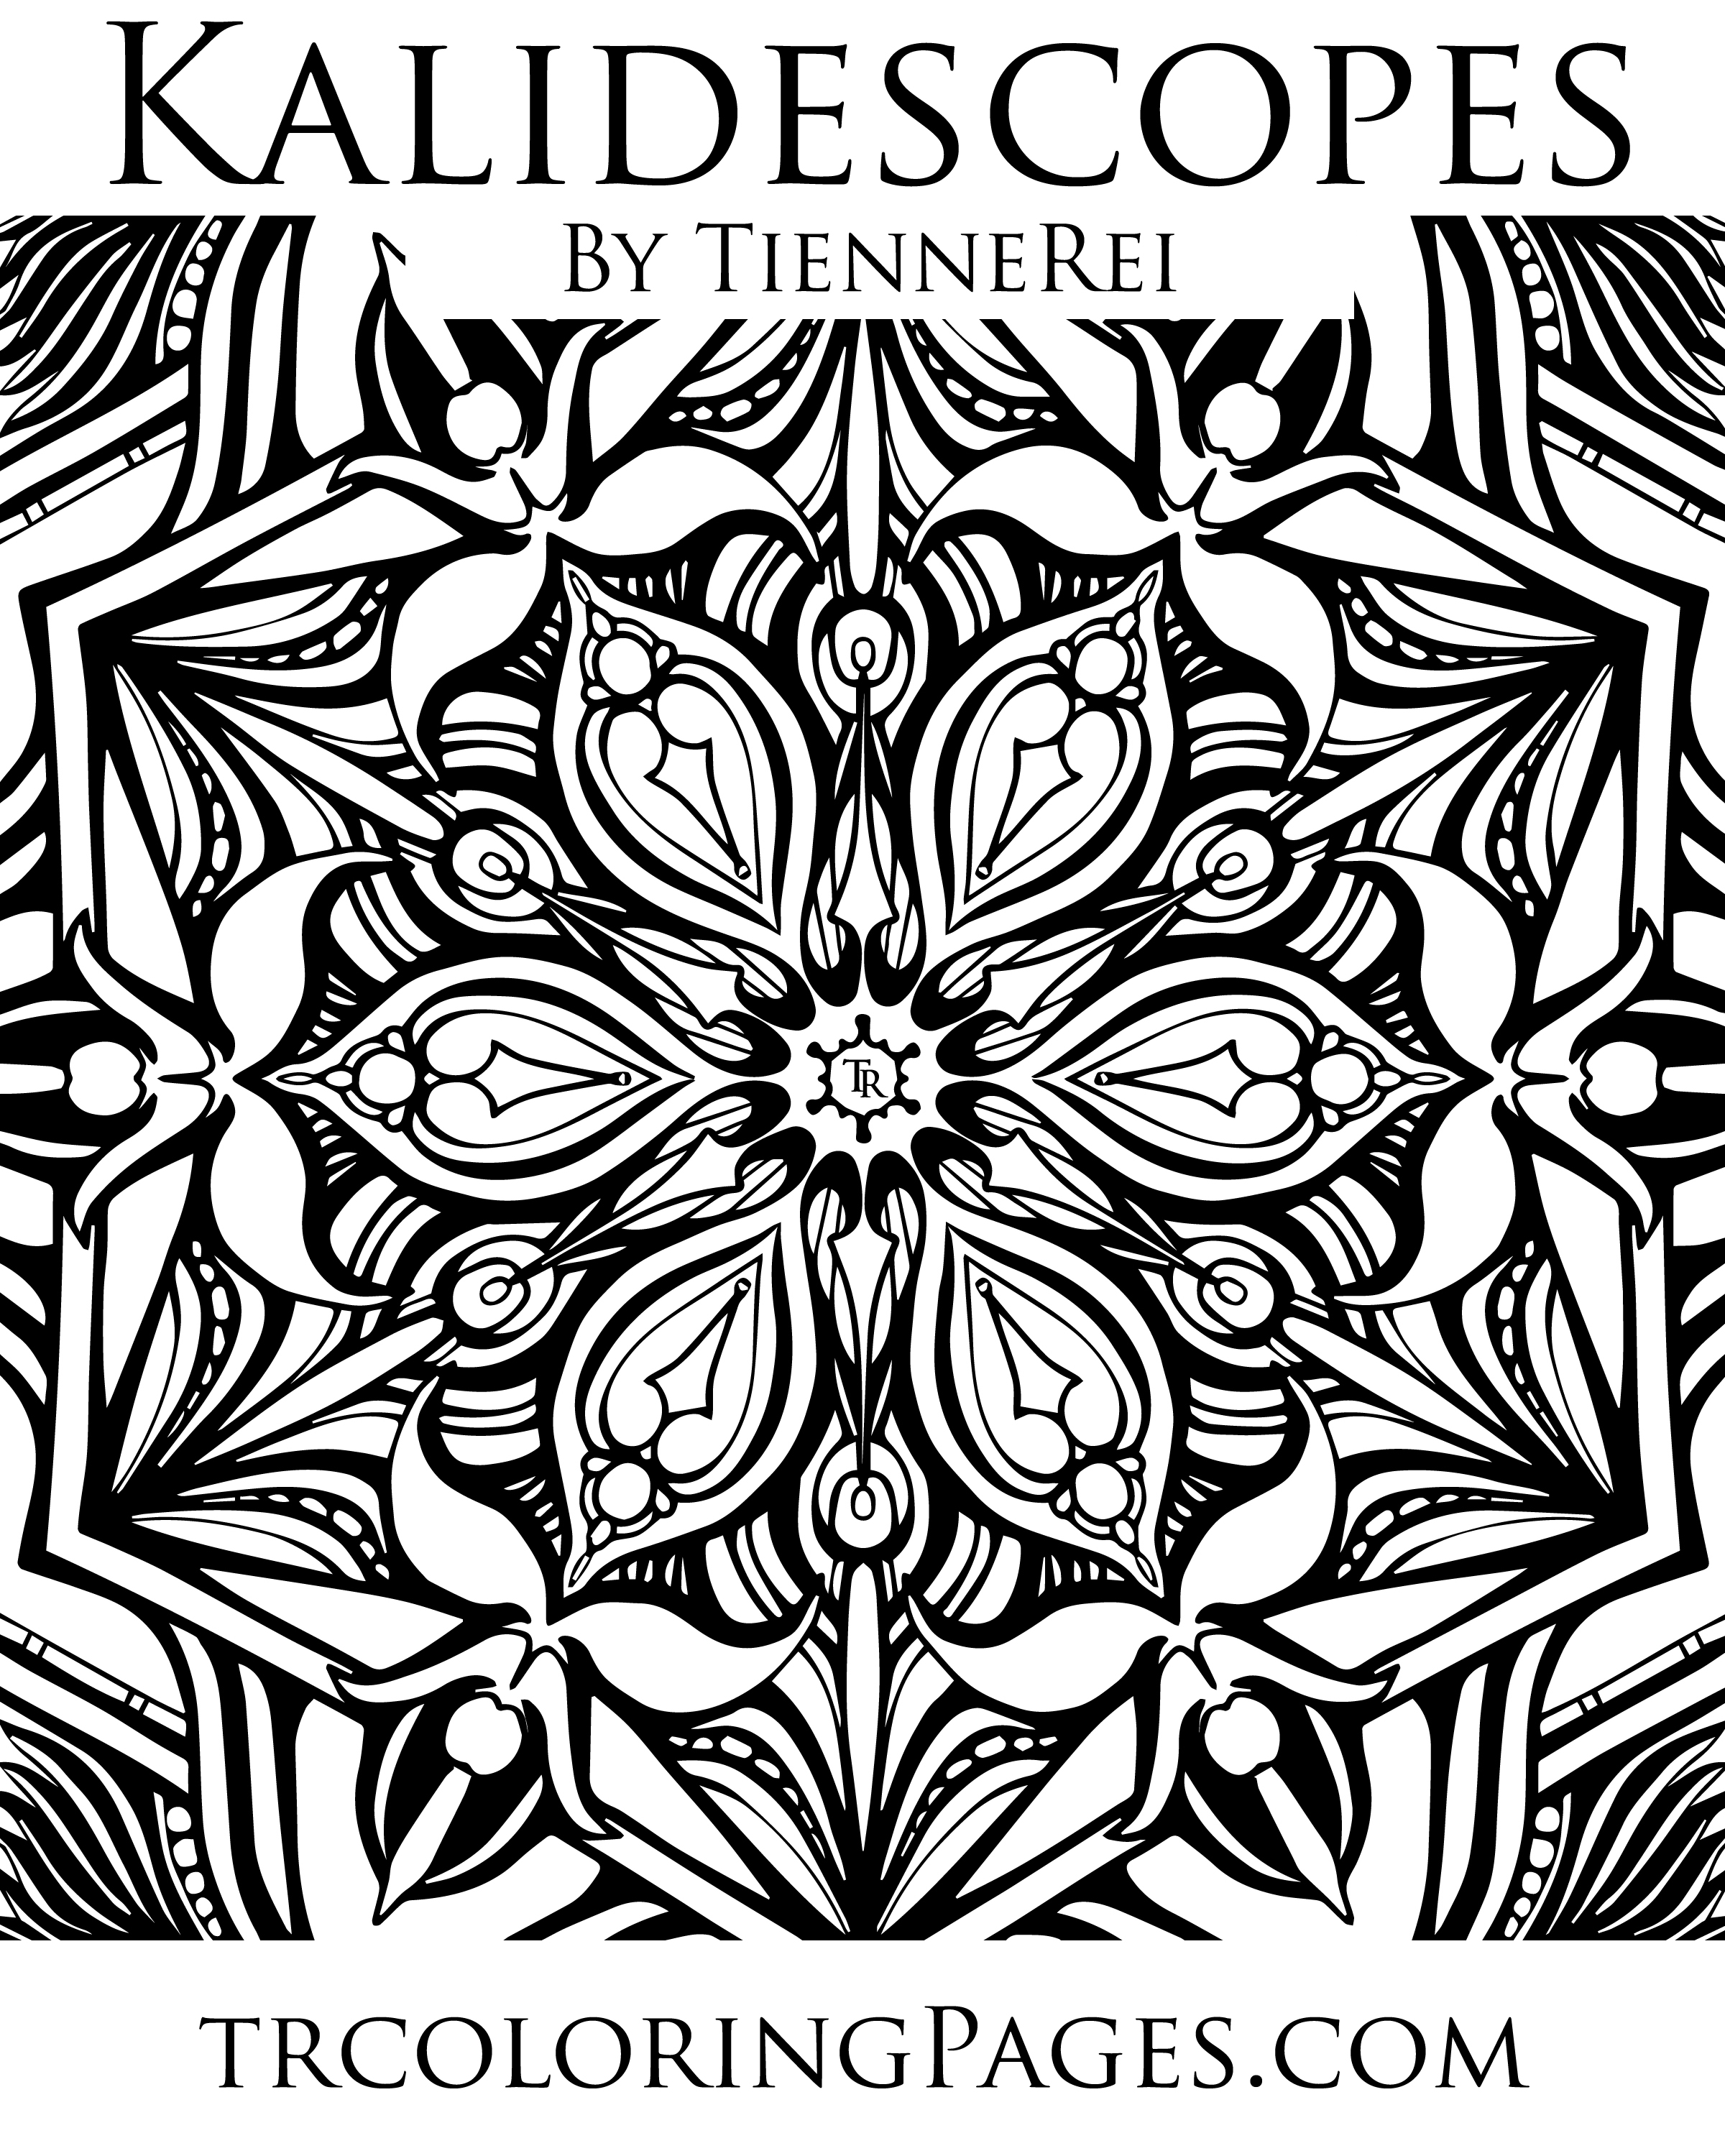 Wonderful 1.5 Binder Spine Template Tall 10 Tips For Writing A Good Resume Clean 10 Tips To Making A Resume 100 Free Resume Builder Old 1099 Templates Fresh12 Hour Schedule Template Kaleidoscope Coloring Page | Tienne Rei Fine Art